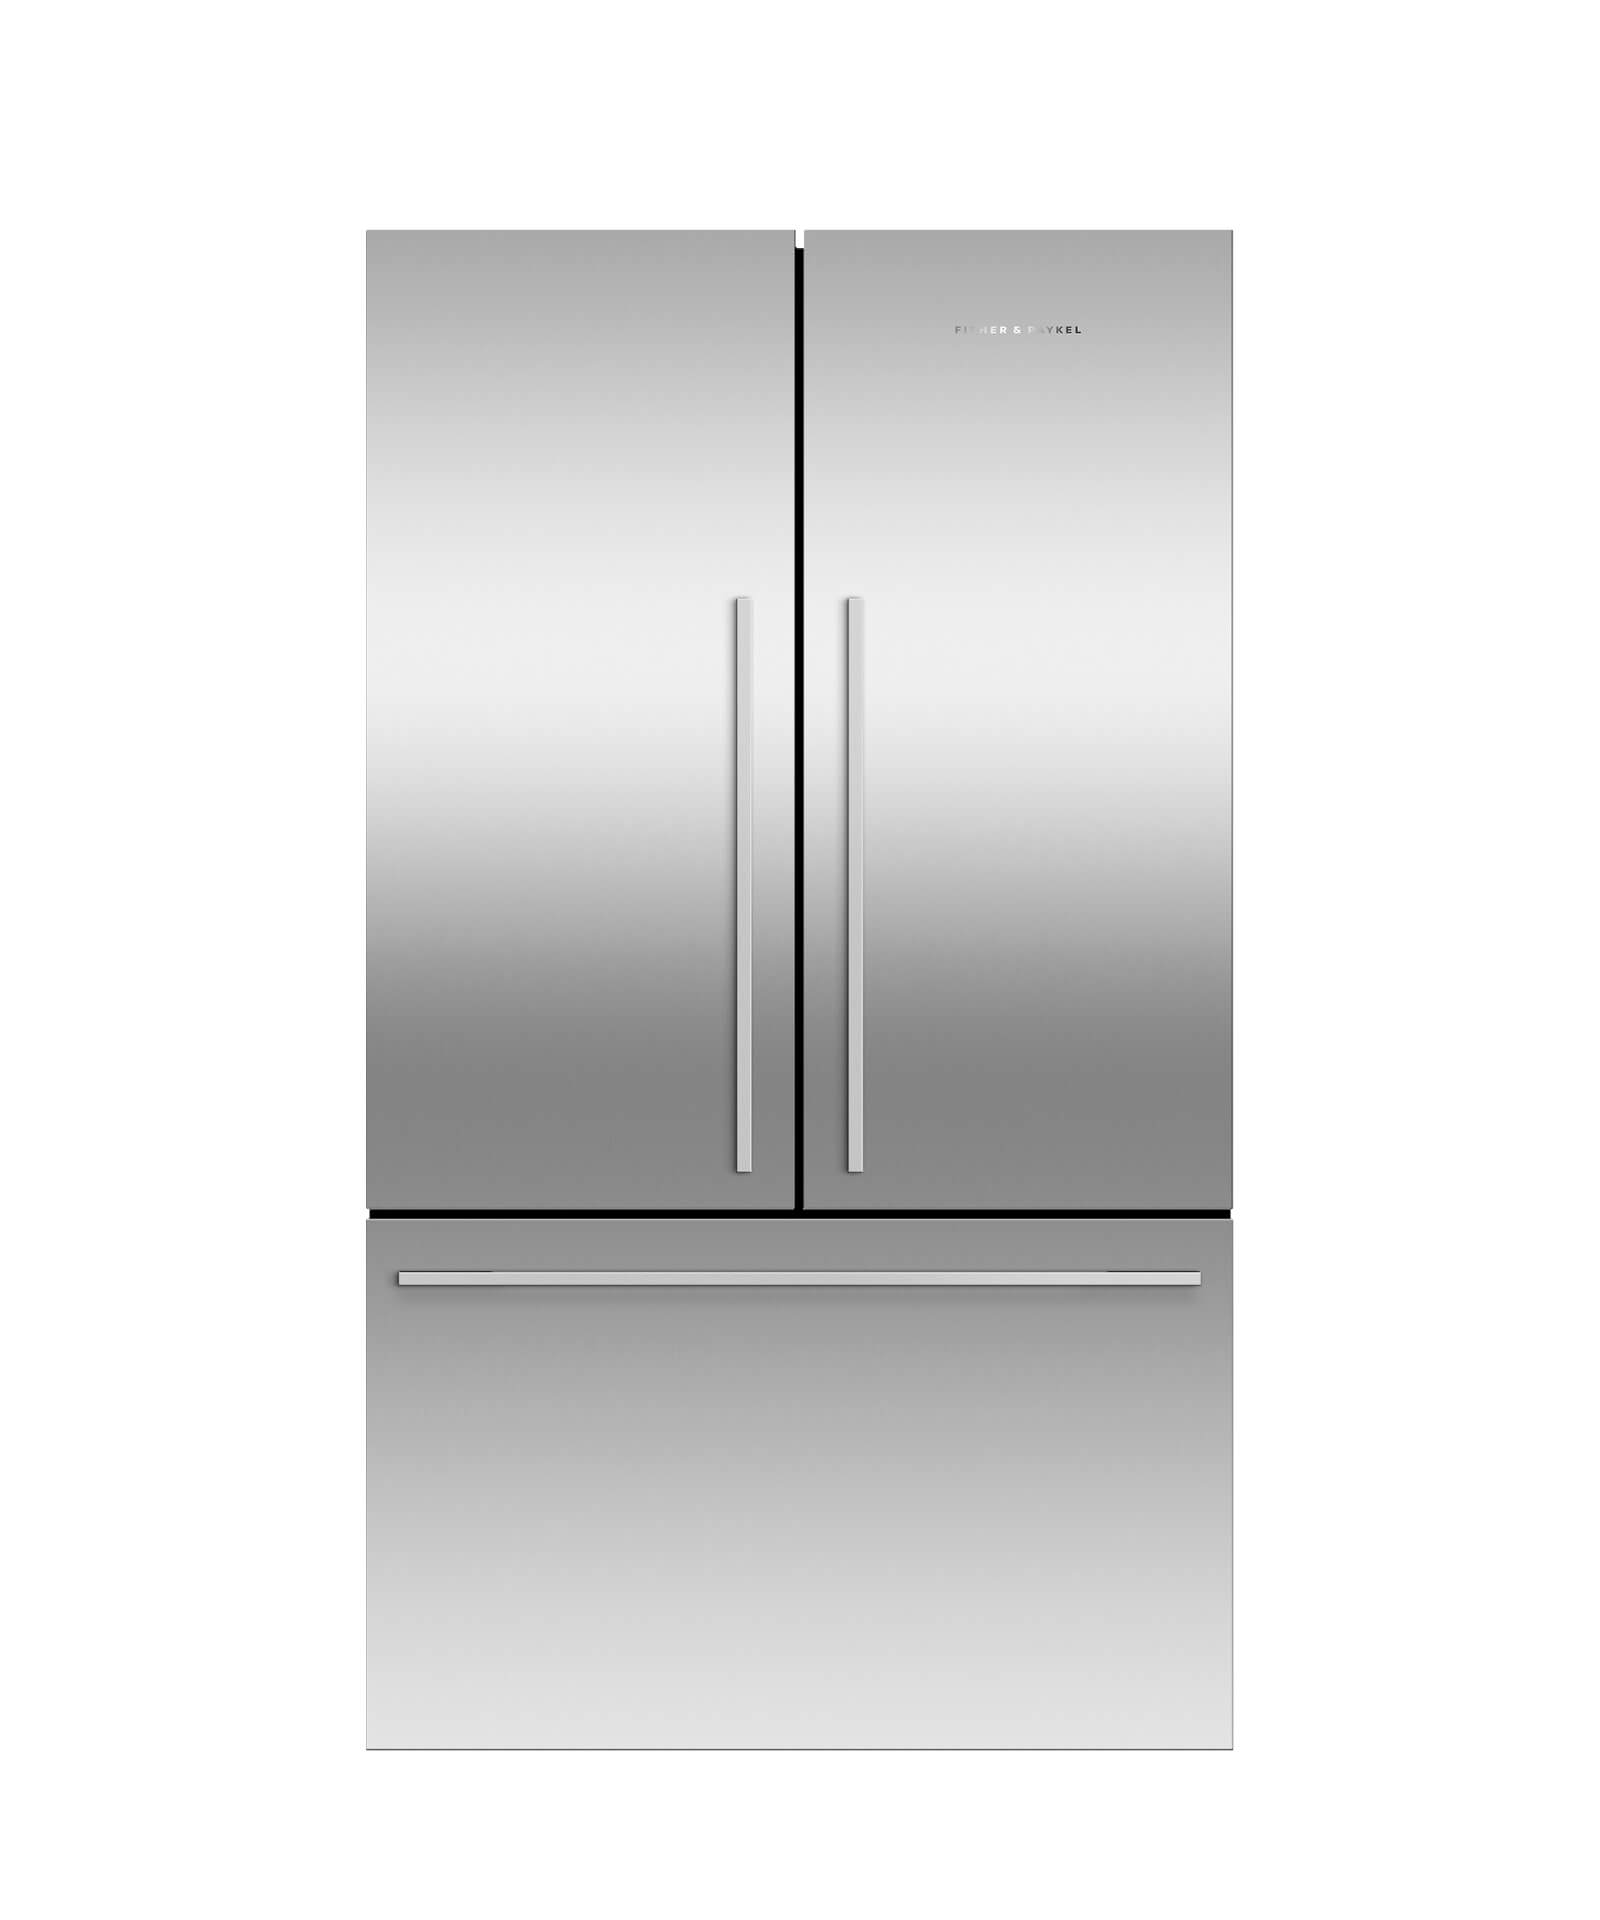 Rf610adx5 Activesmart Fridge 900mm French Door 614l